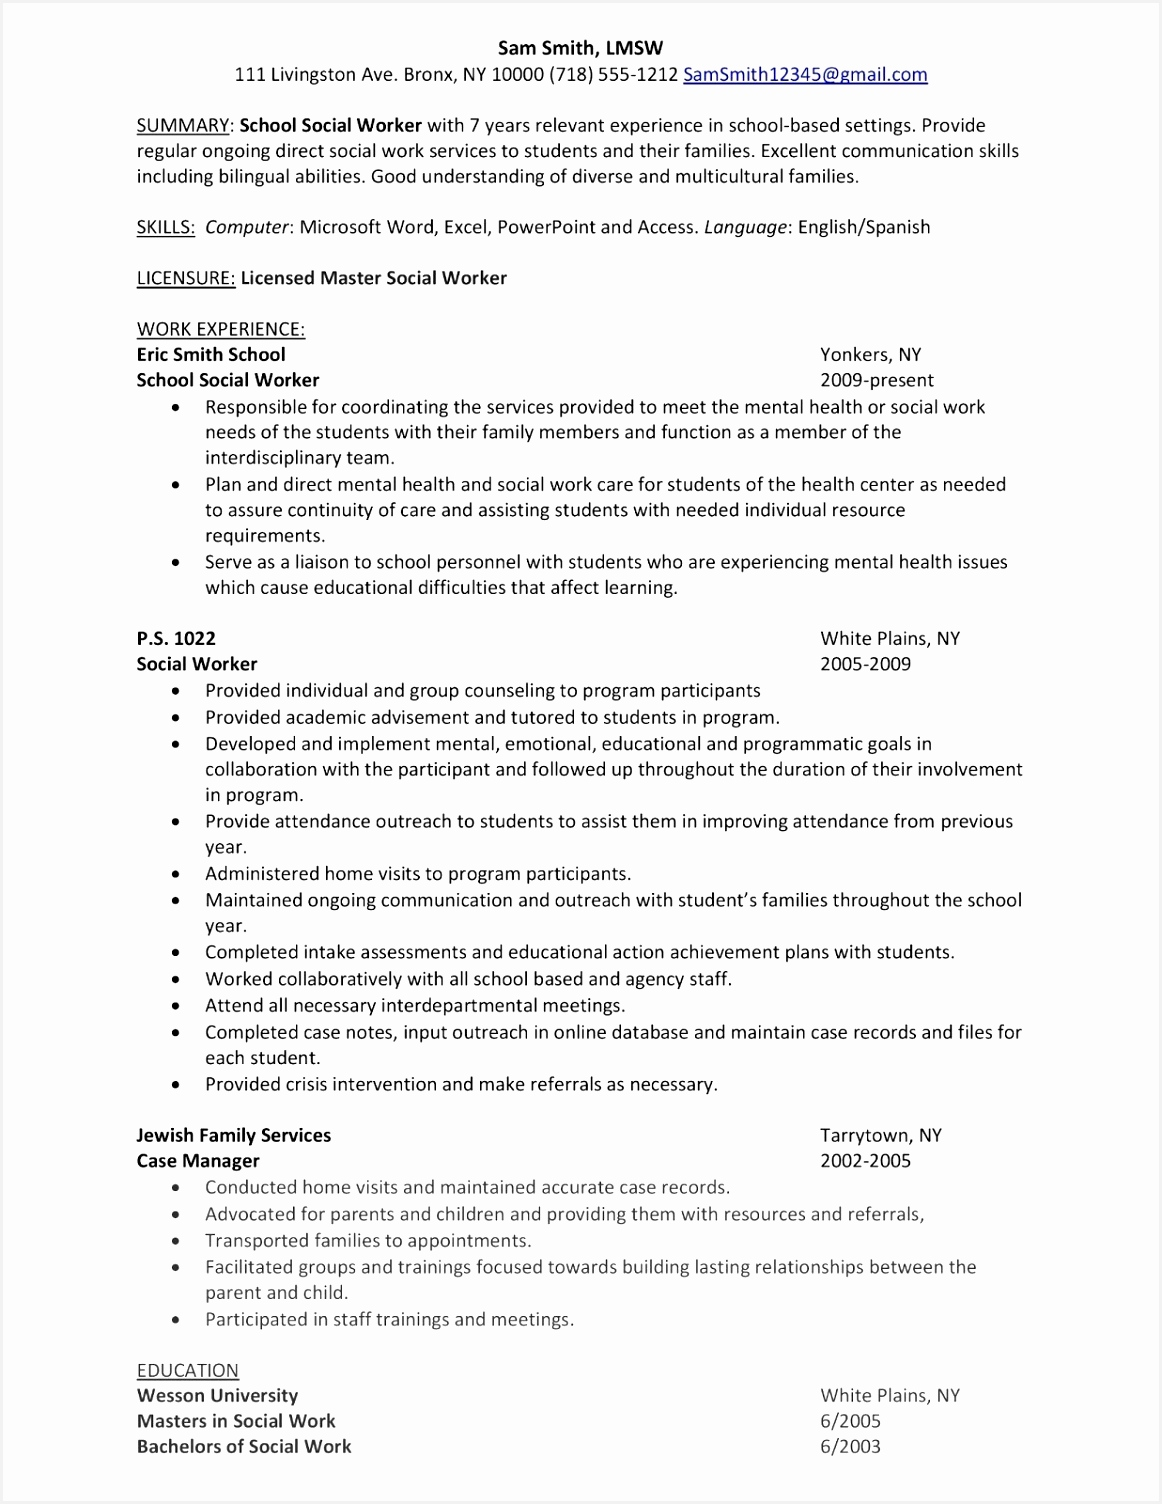 Worker Resume Sample Sample Related Post 150411625mhrv